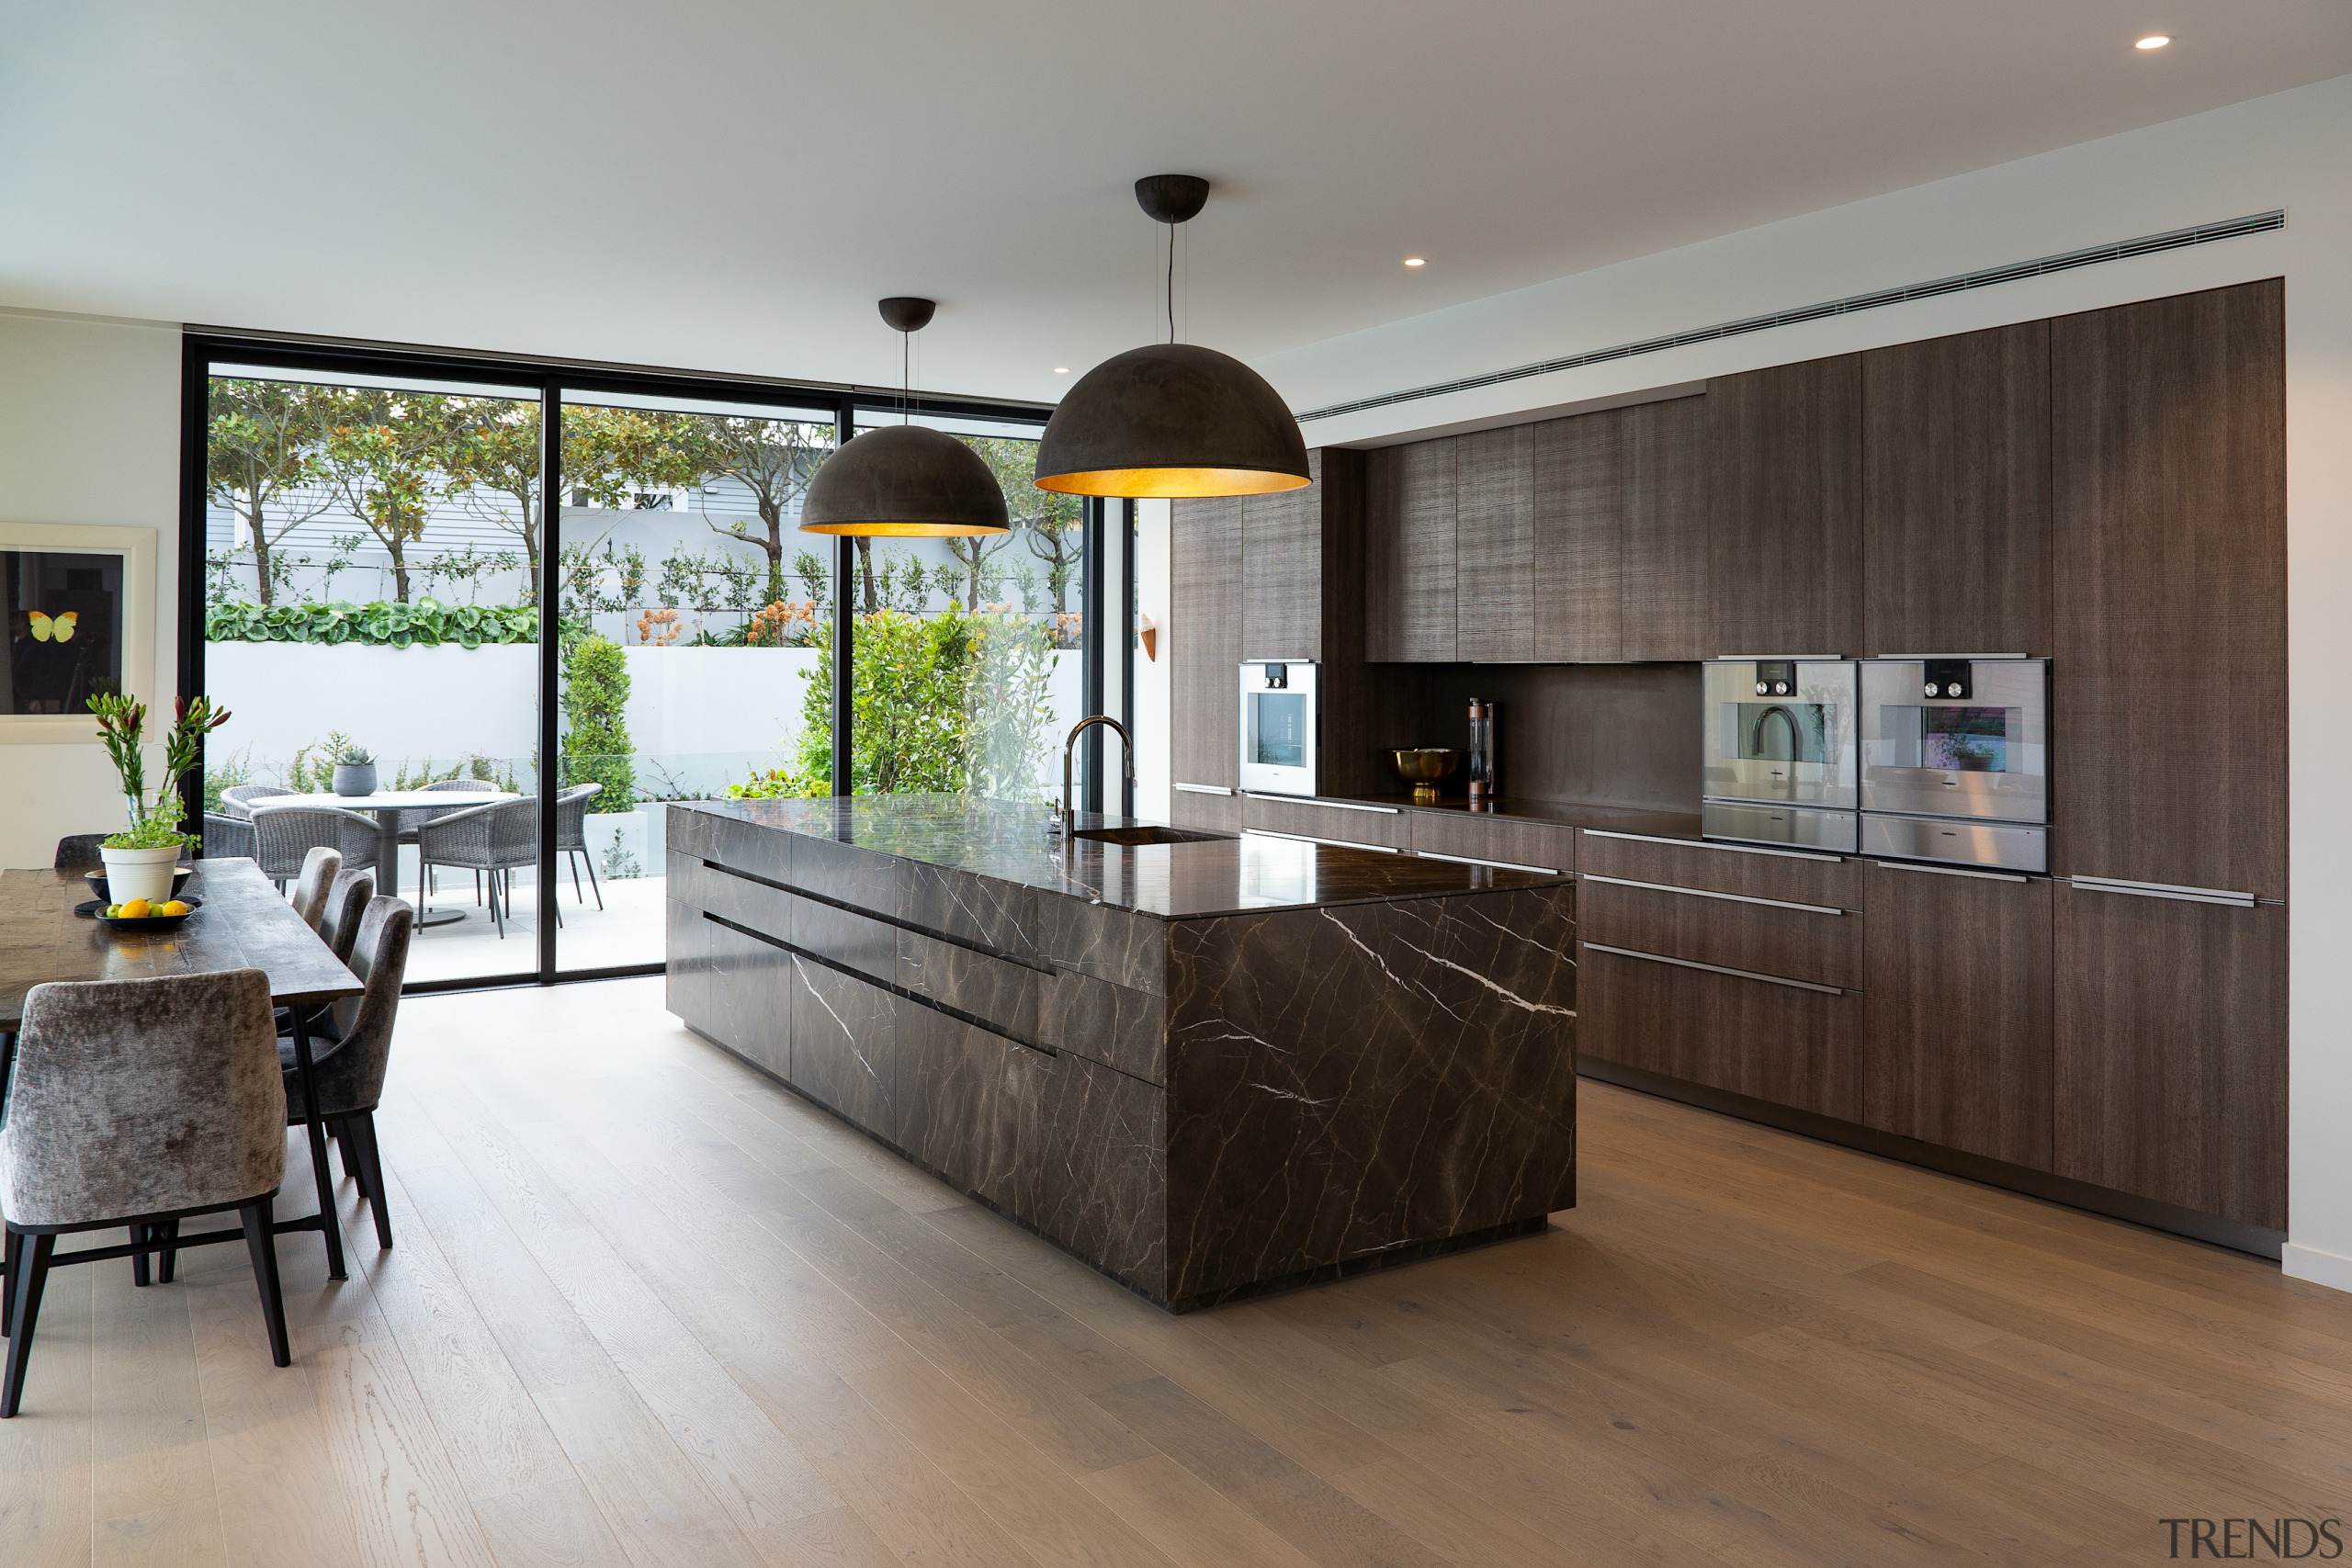 Floor to ceiling sliders adjacent to the kitchen